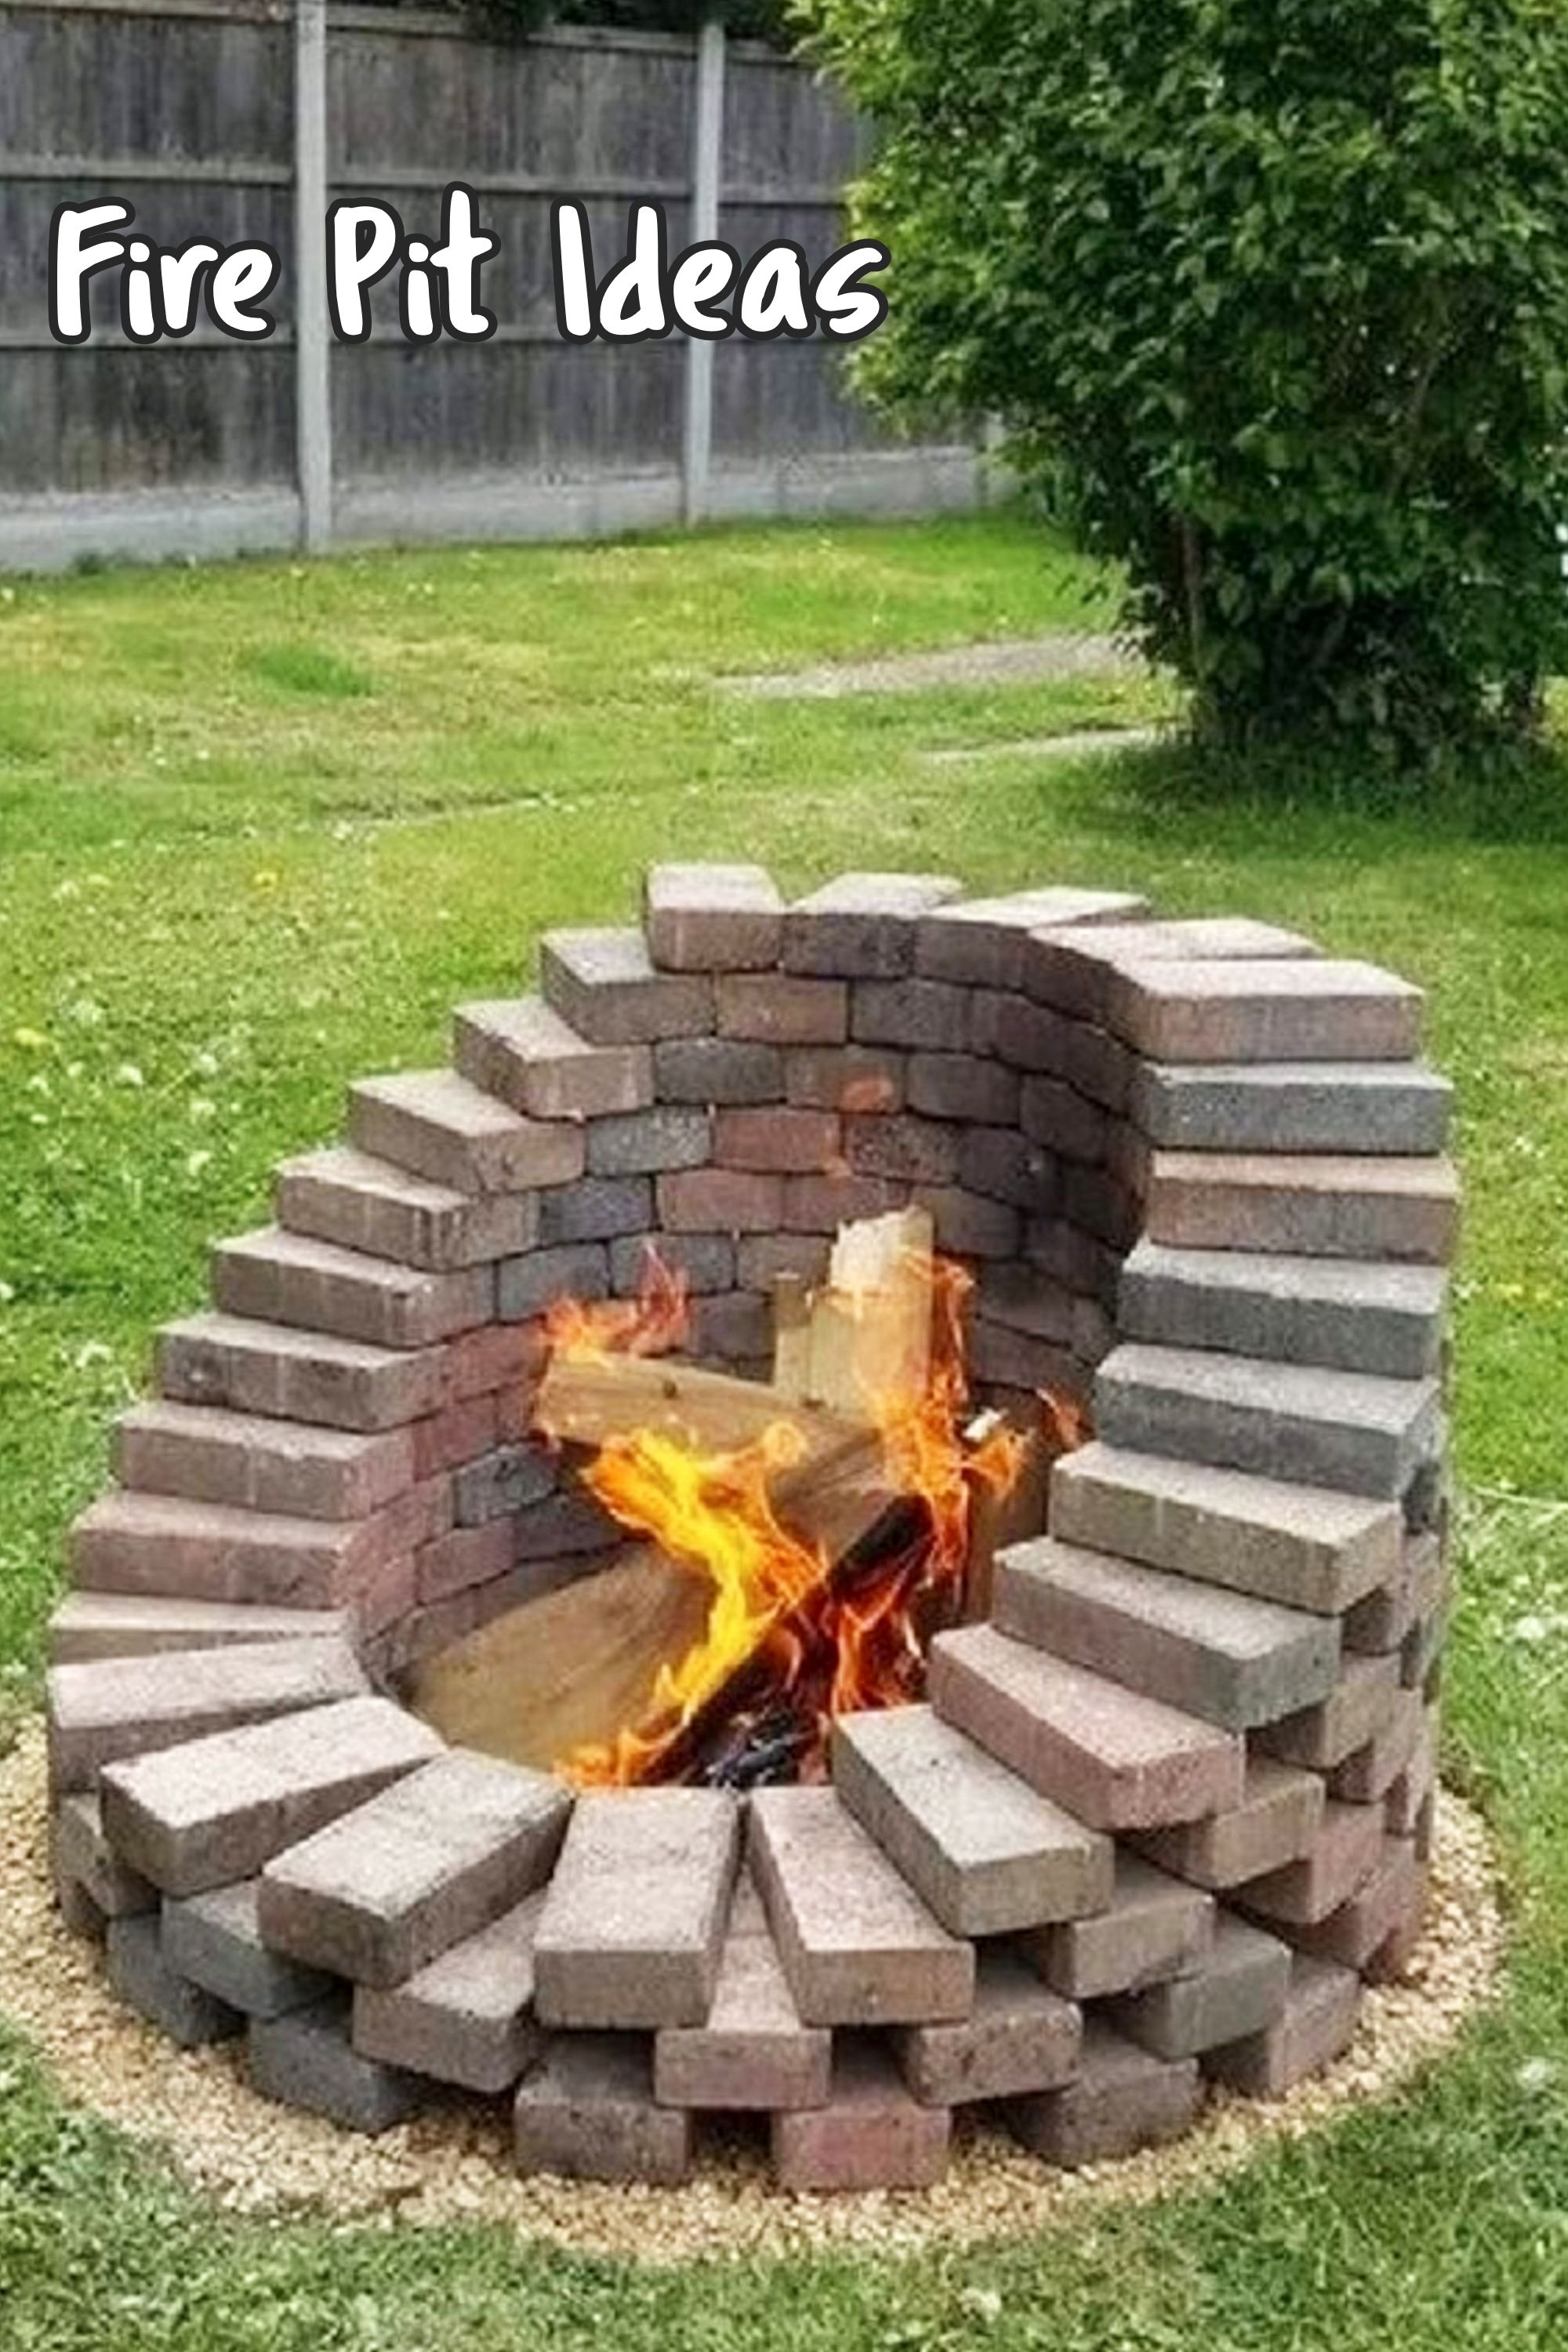 Backyard Fire Pit Ideas and Designs for Your Yard, Deck or Patio - Clever DIY Ideas